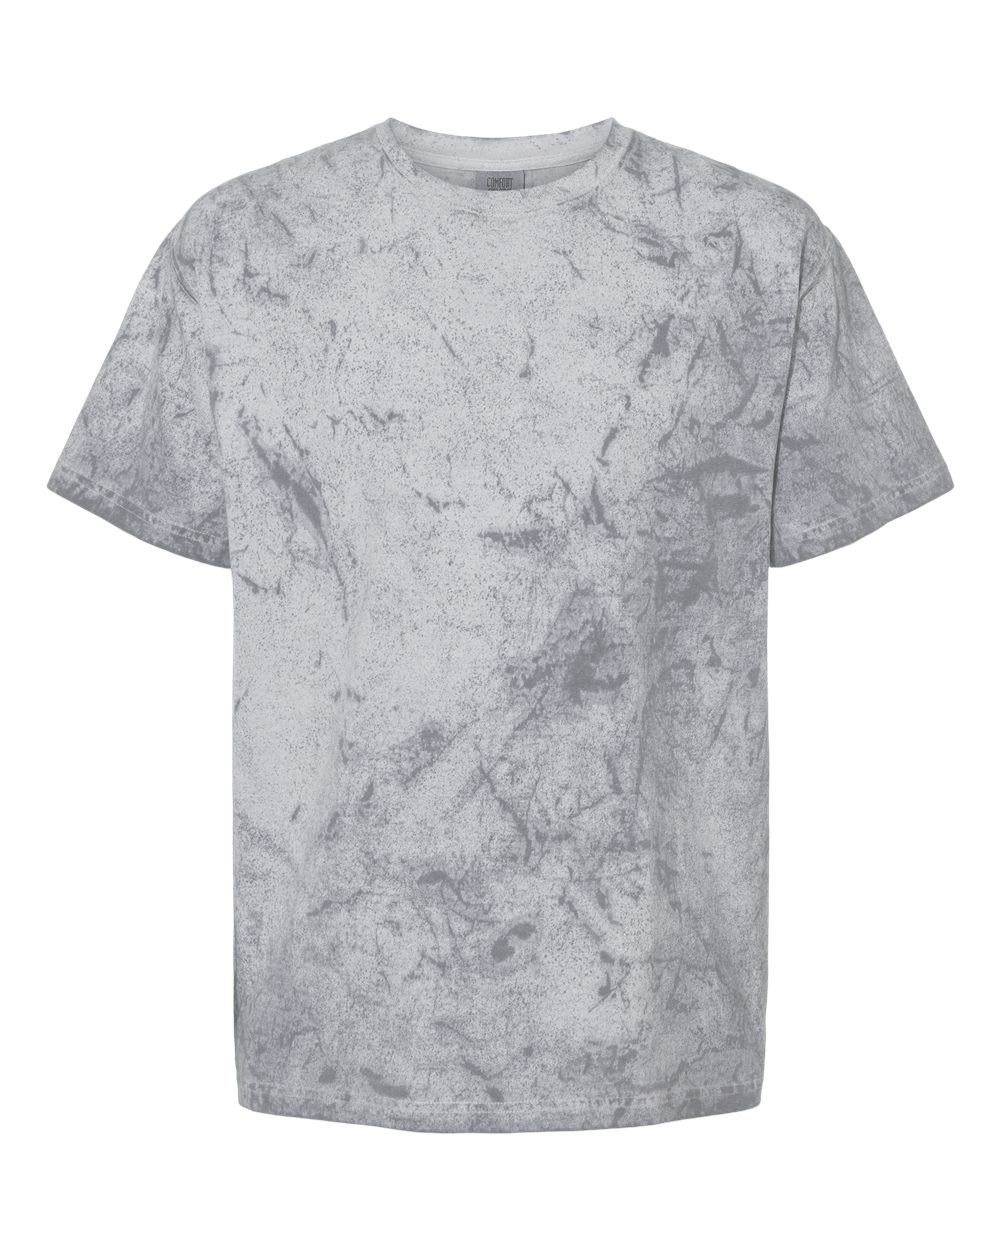 Colorblast Heavyweight T-Shirt-Comfort Colors